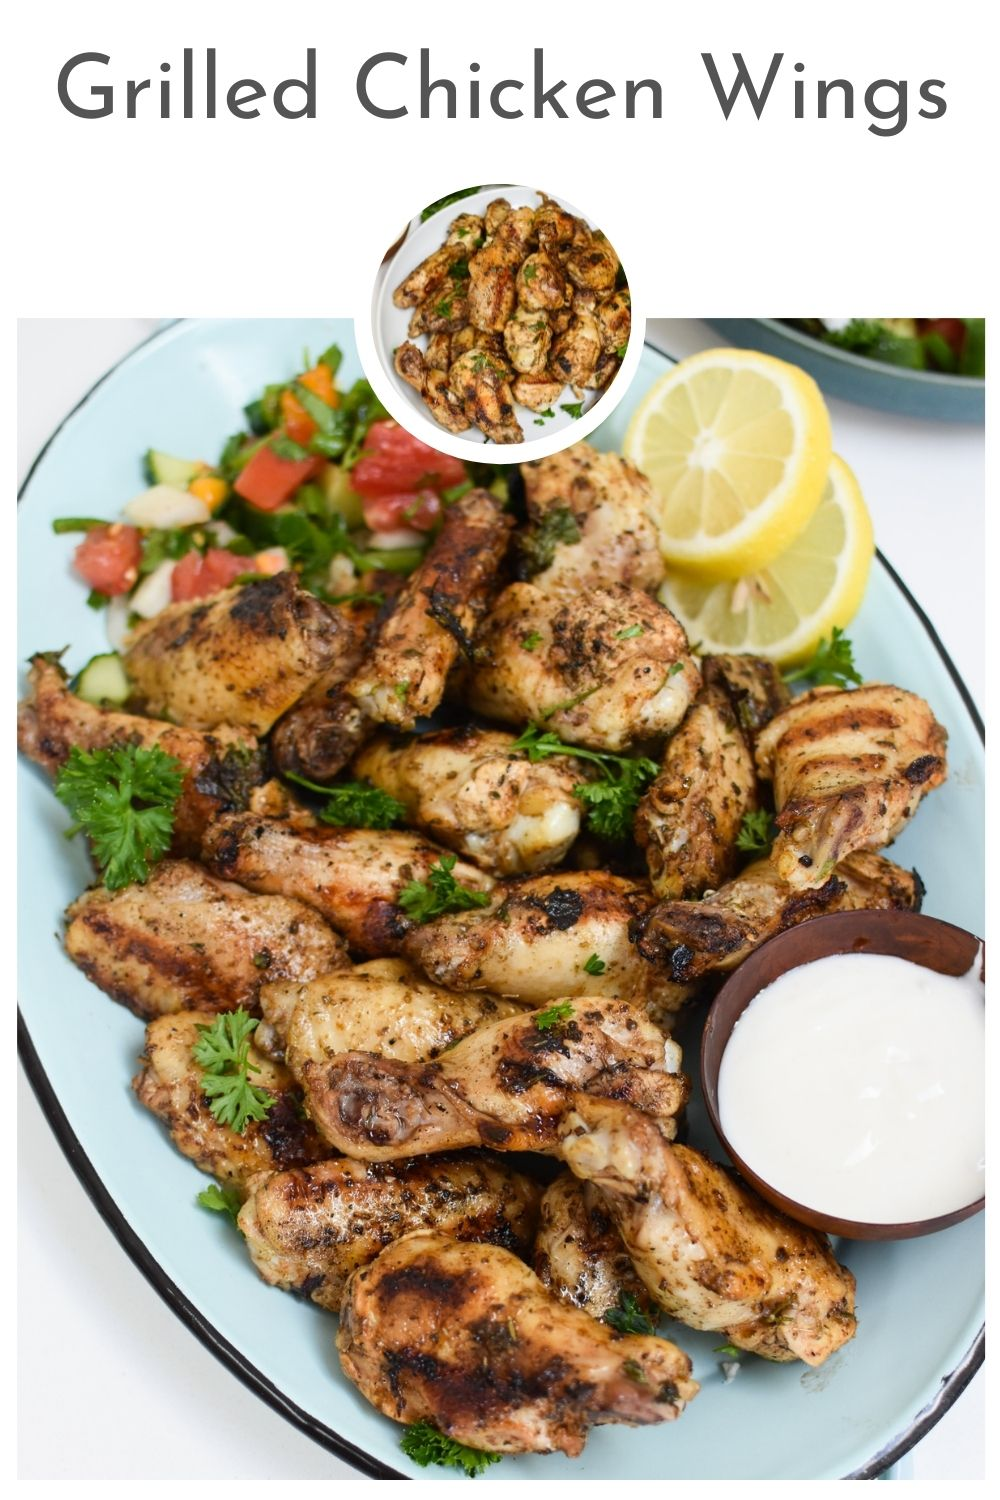 Grilled Mediterranean Chicken Wings with logo.